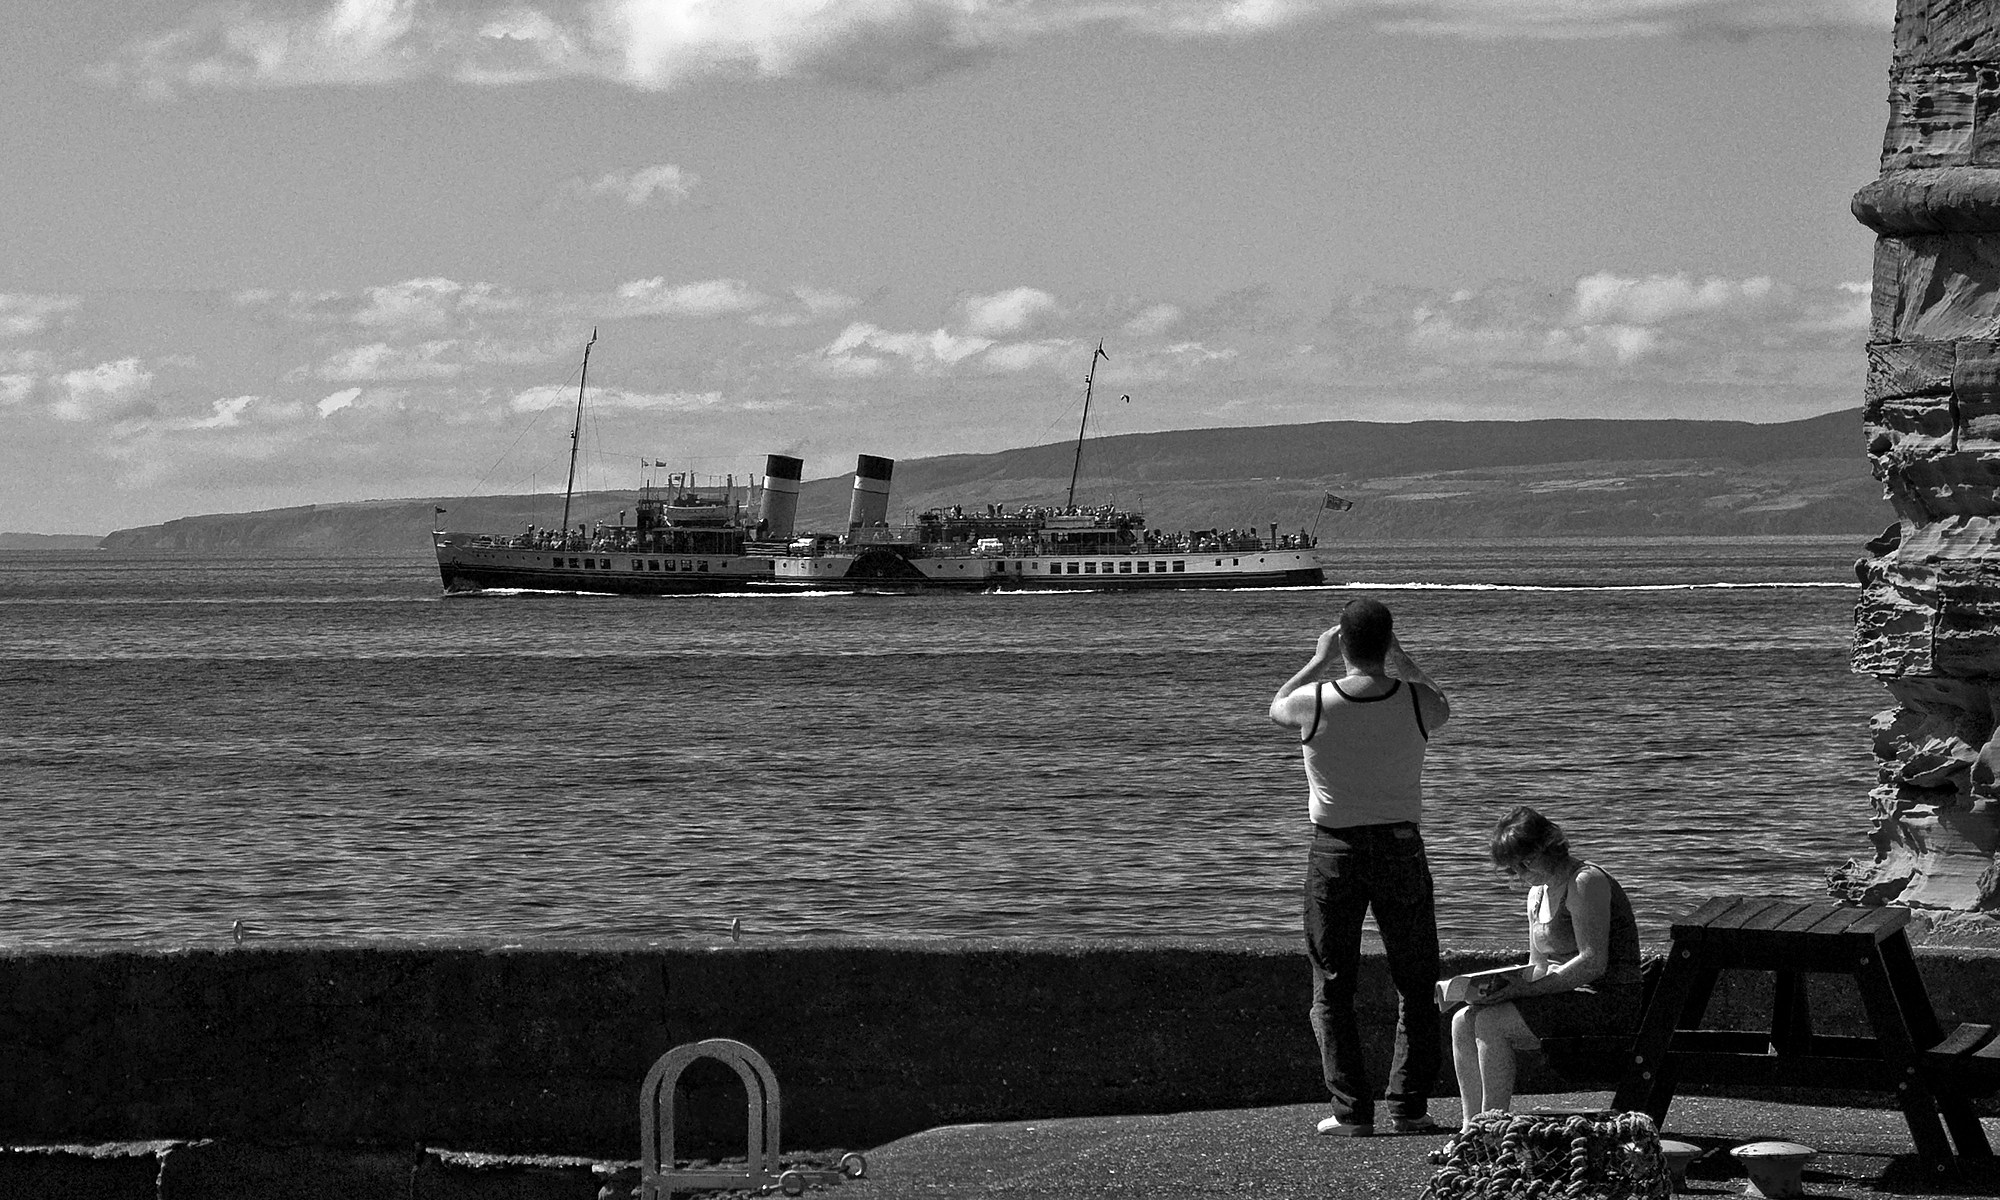 Waverley Paddle Steamer from Dunure